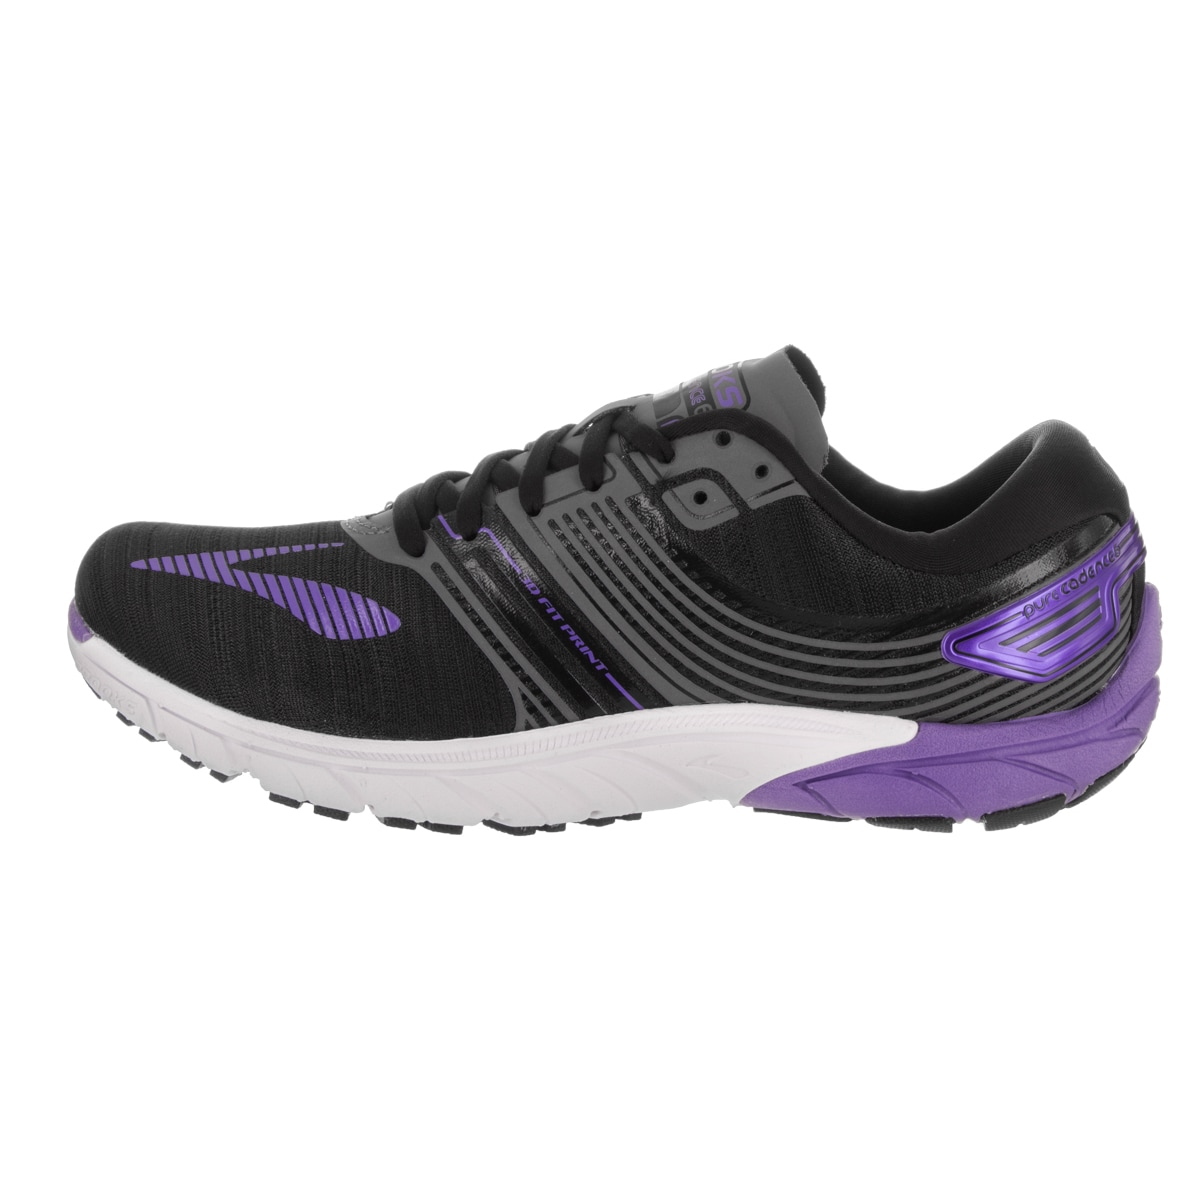 8015201b38c Shop Brooks Women s PureCadence 6 Running Shoes - Free Shipping Today -  Overstock - 14973038